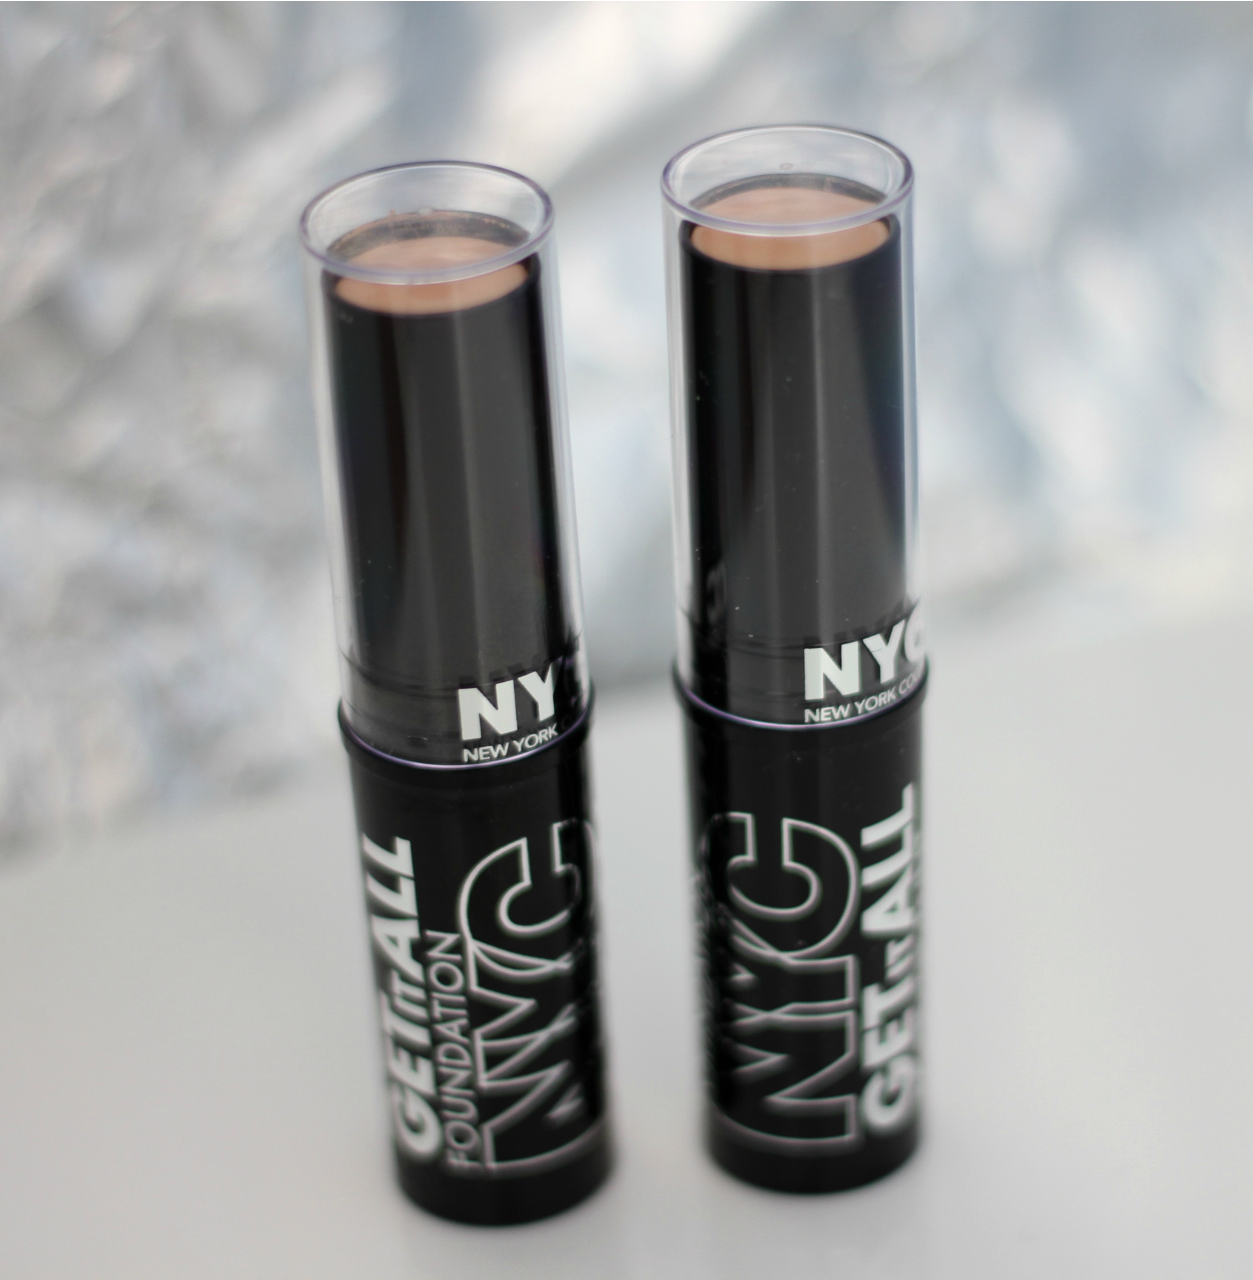 NYC New York Color Skin Matching Foundation reviews, photo